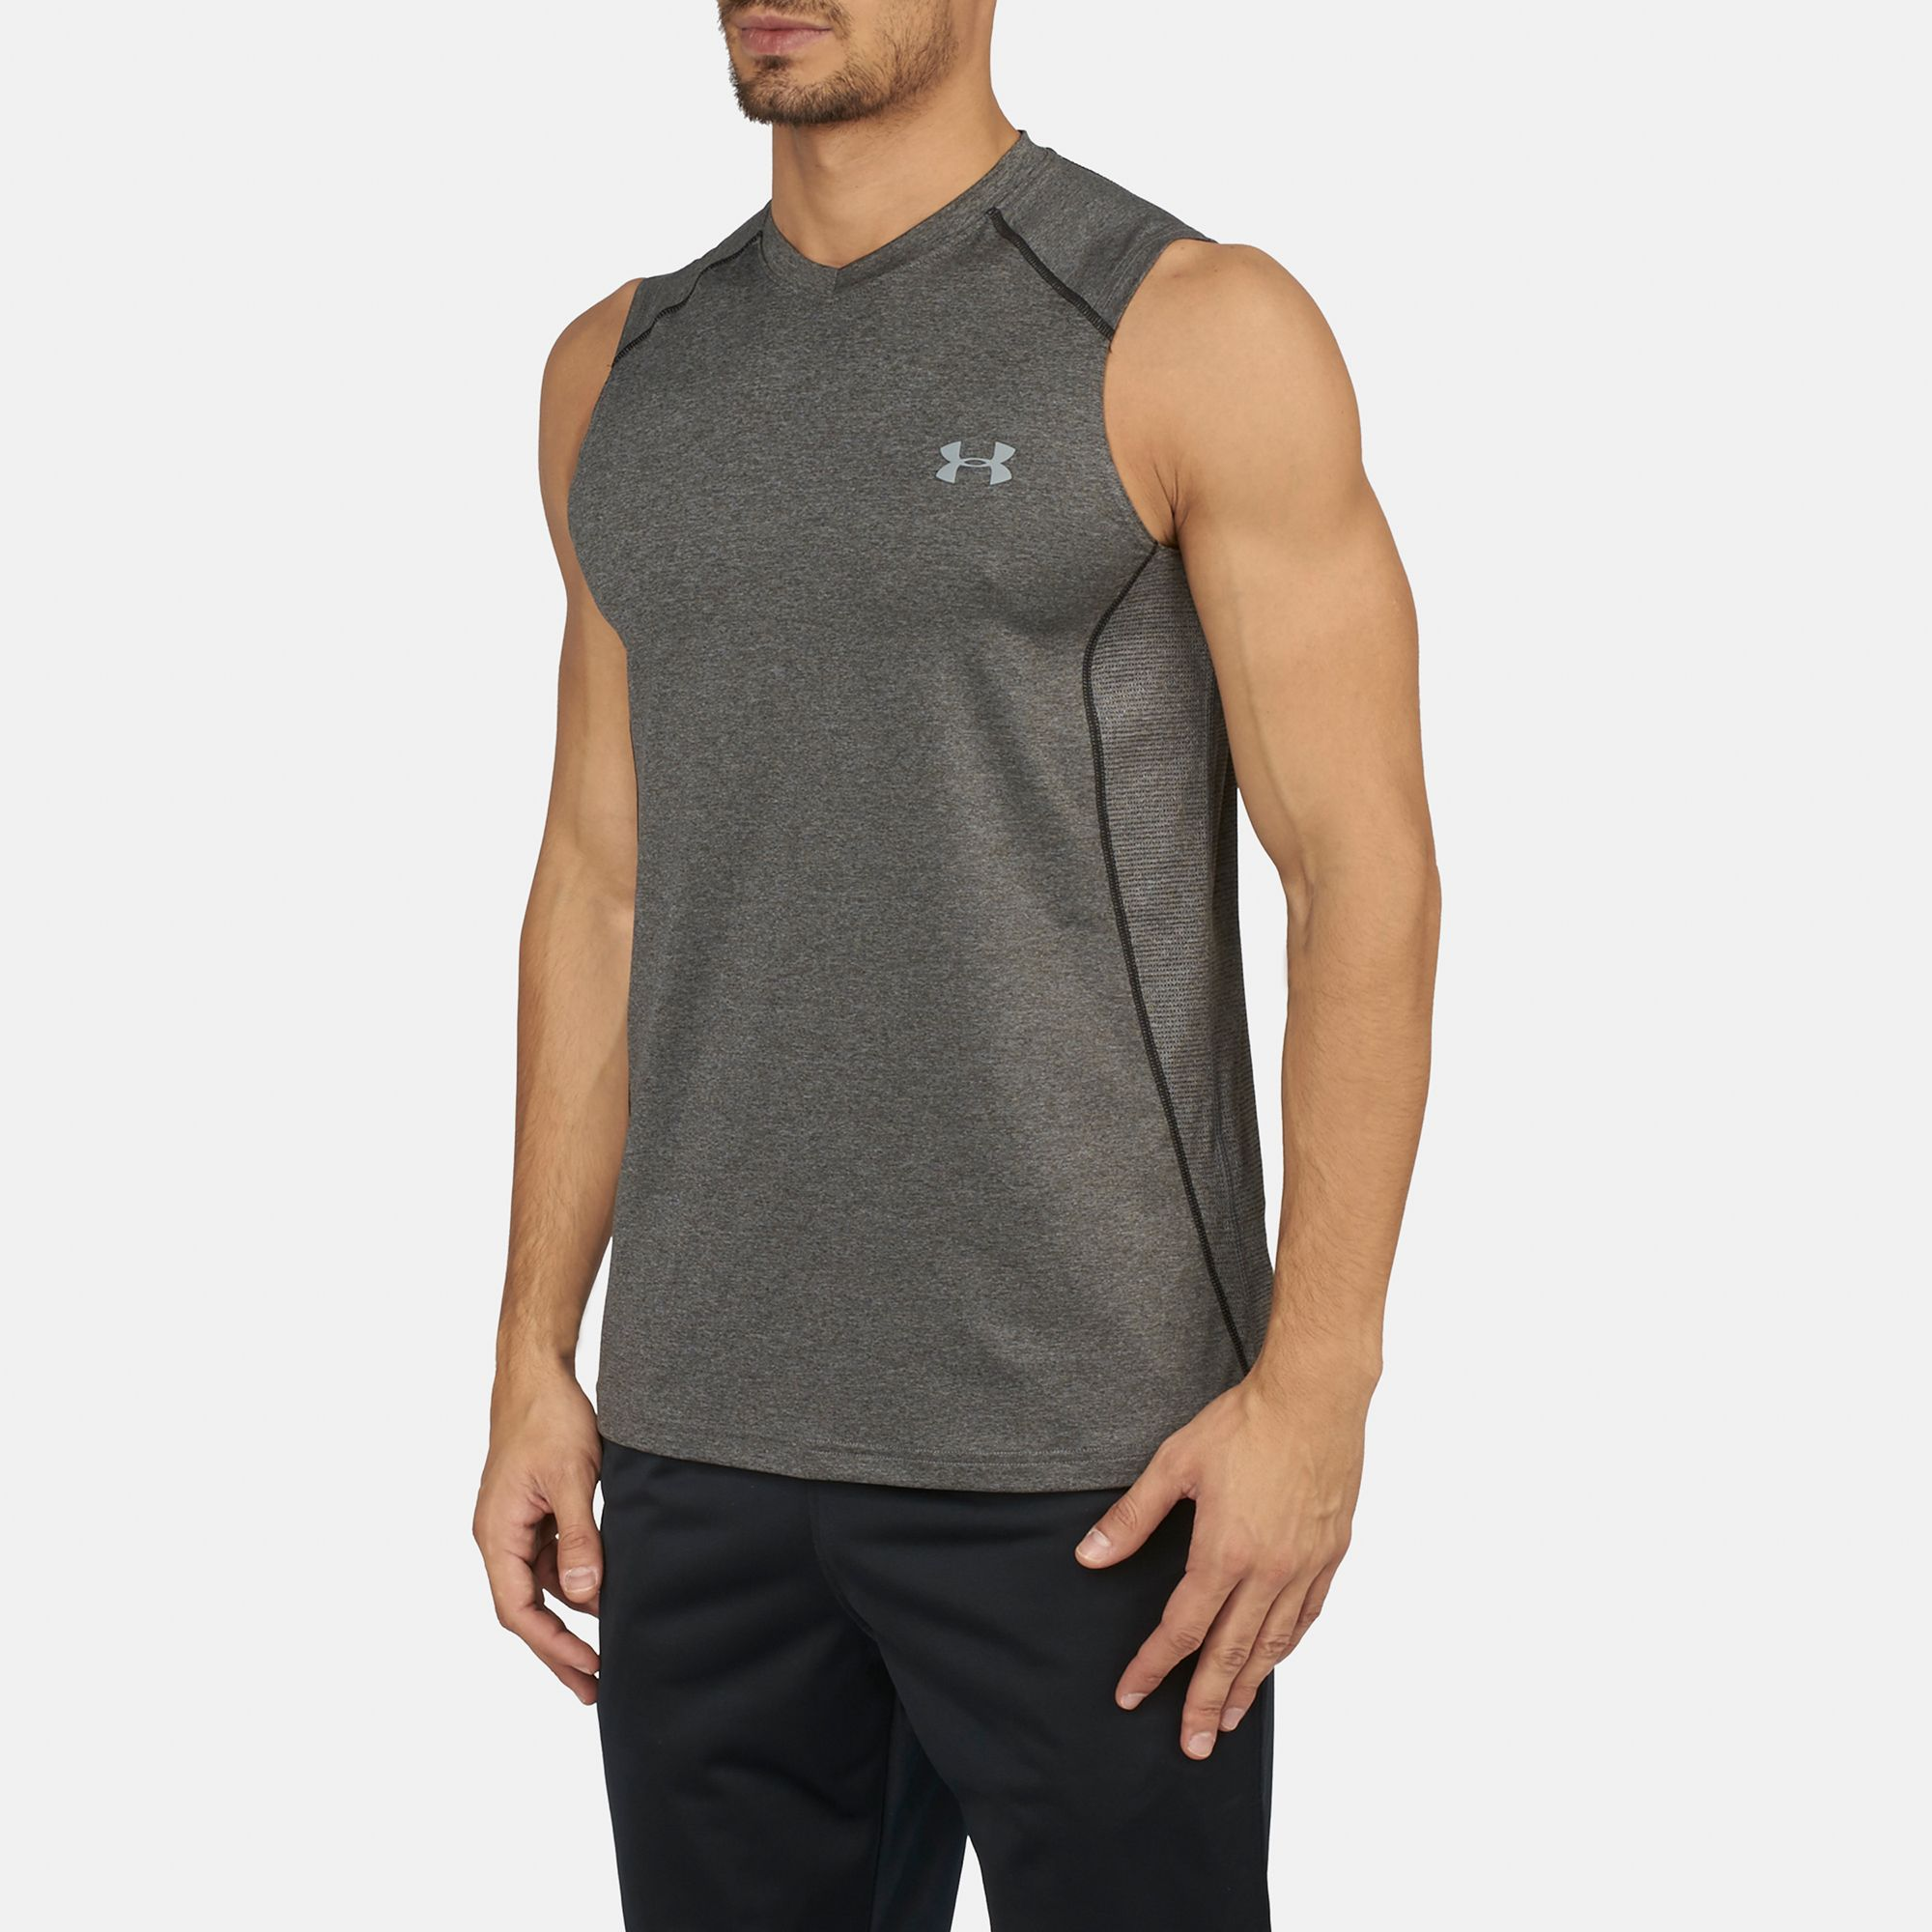 ccdcf49cd77d7 Shop Grey Under Armour Raid Sleeveless T-Shirt for Mens by Under ...